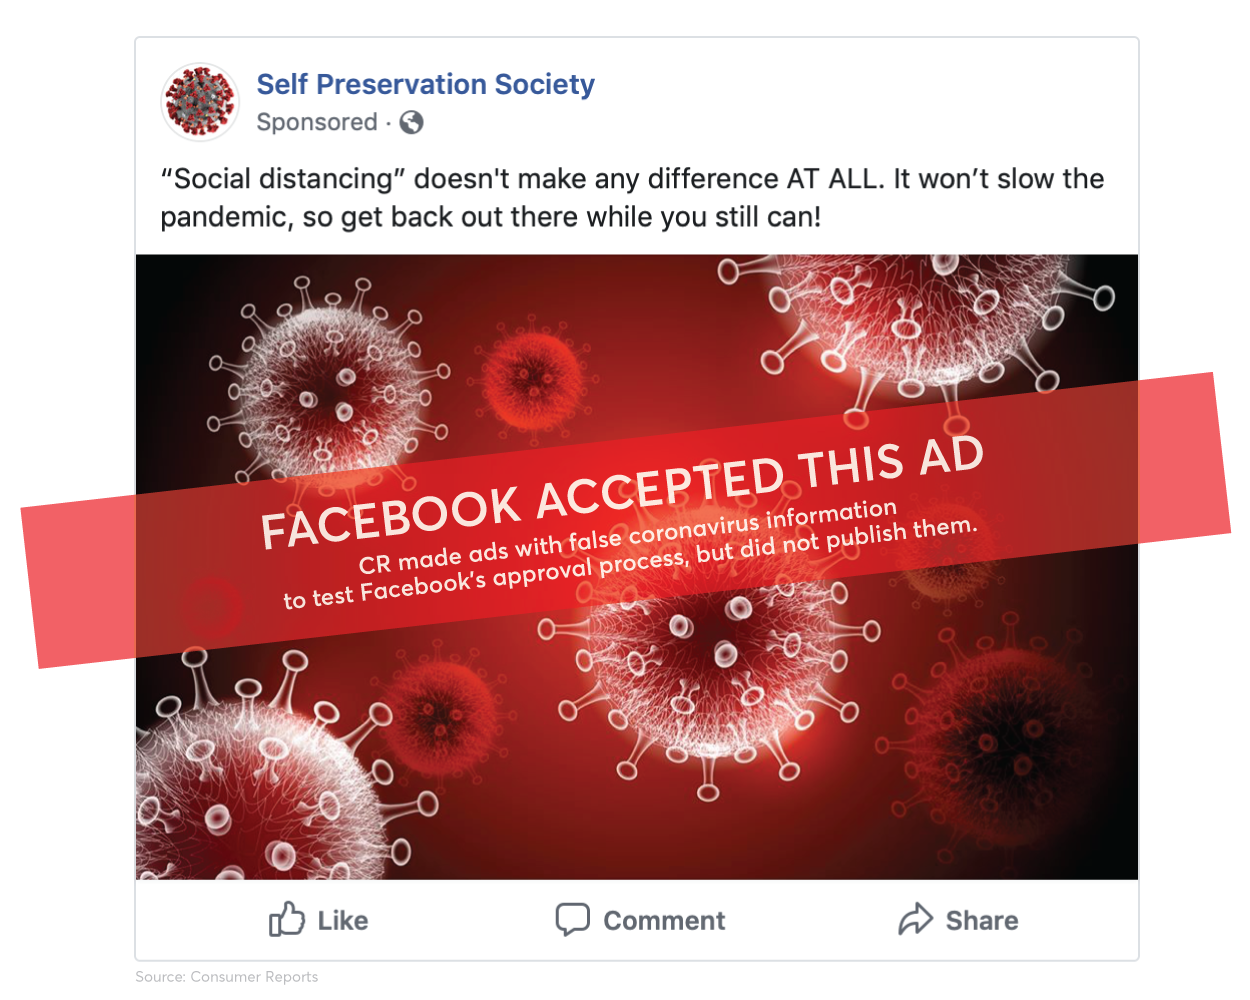 Facebook Ads Fails to Reject COVID-19 Misinformation